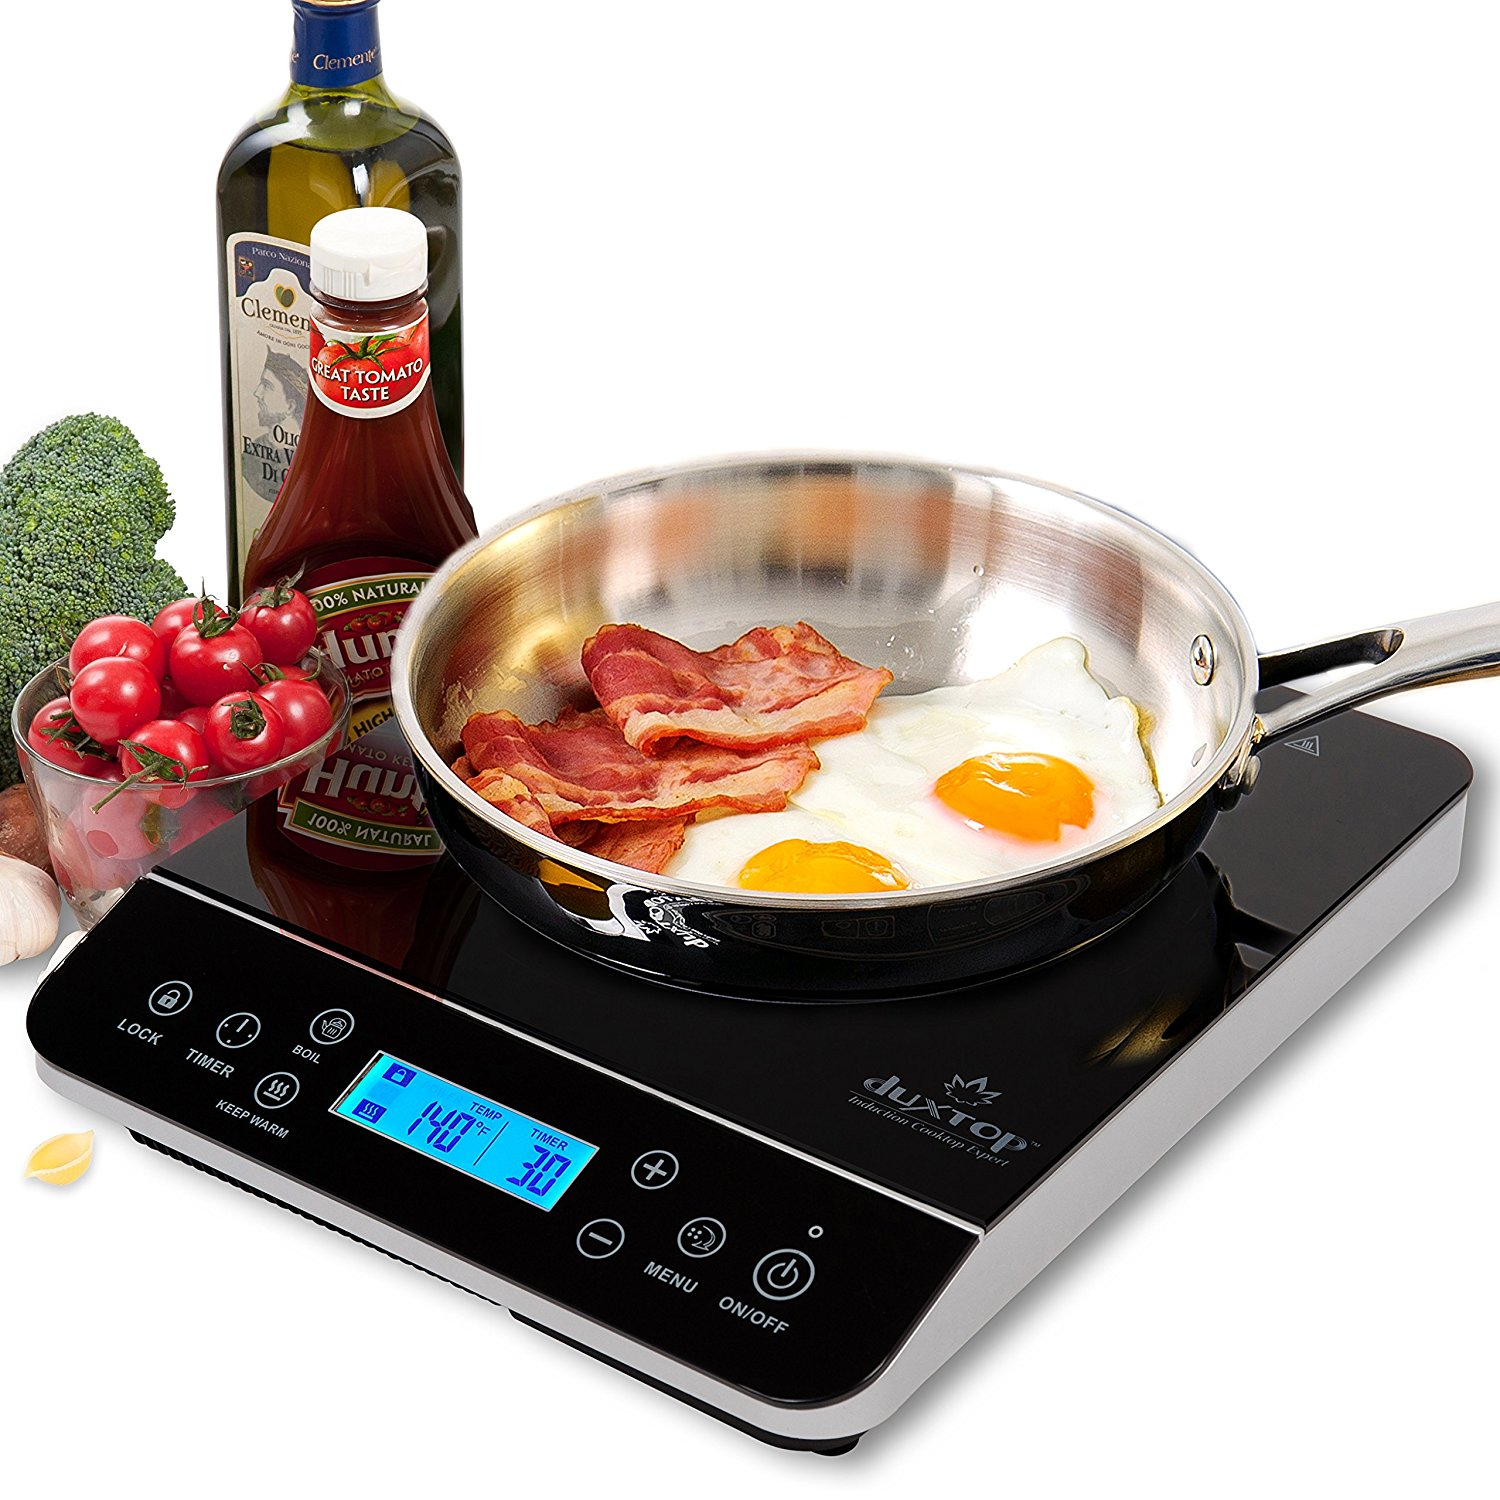 Kuche Single Stove Induction Cooktop Single Portable Induction Cooktop What They Wont Tell